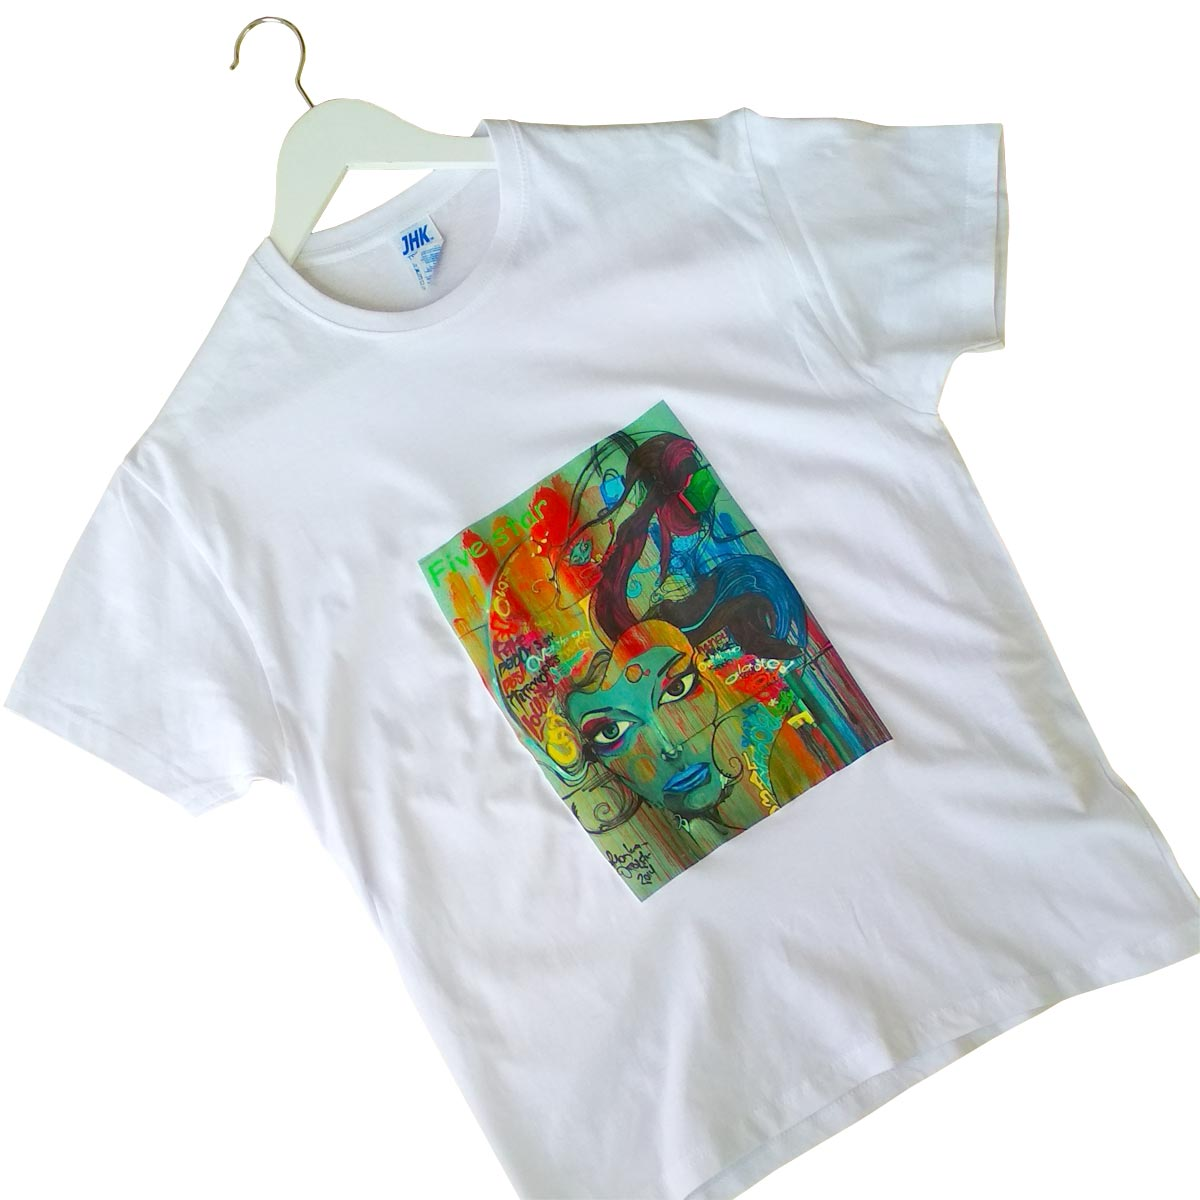 Five star - Transfer paper for light textiles for laser printers